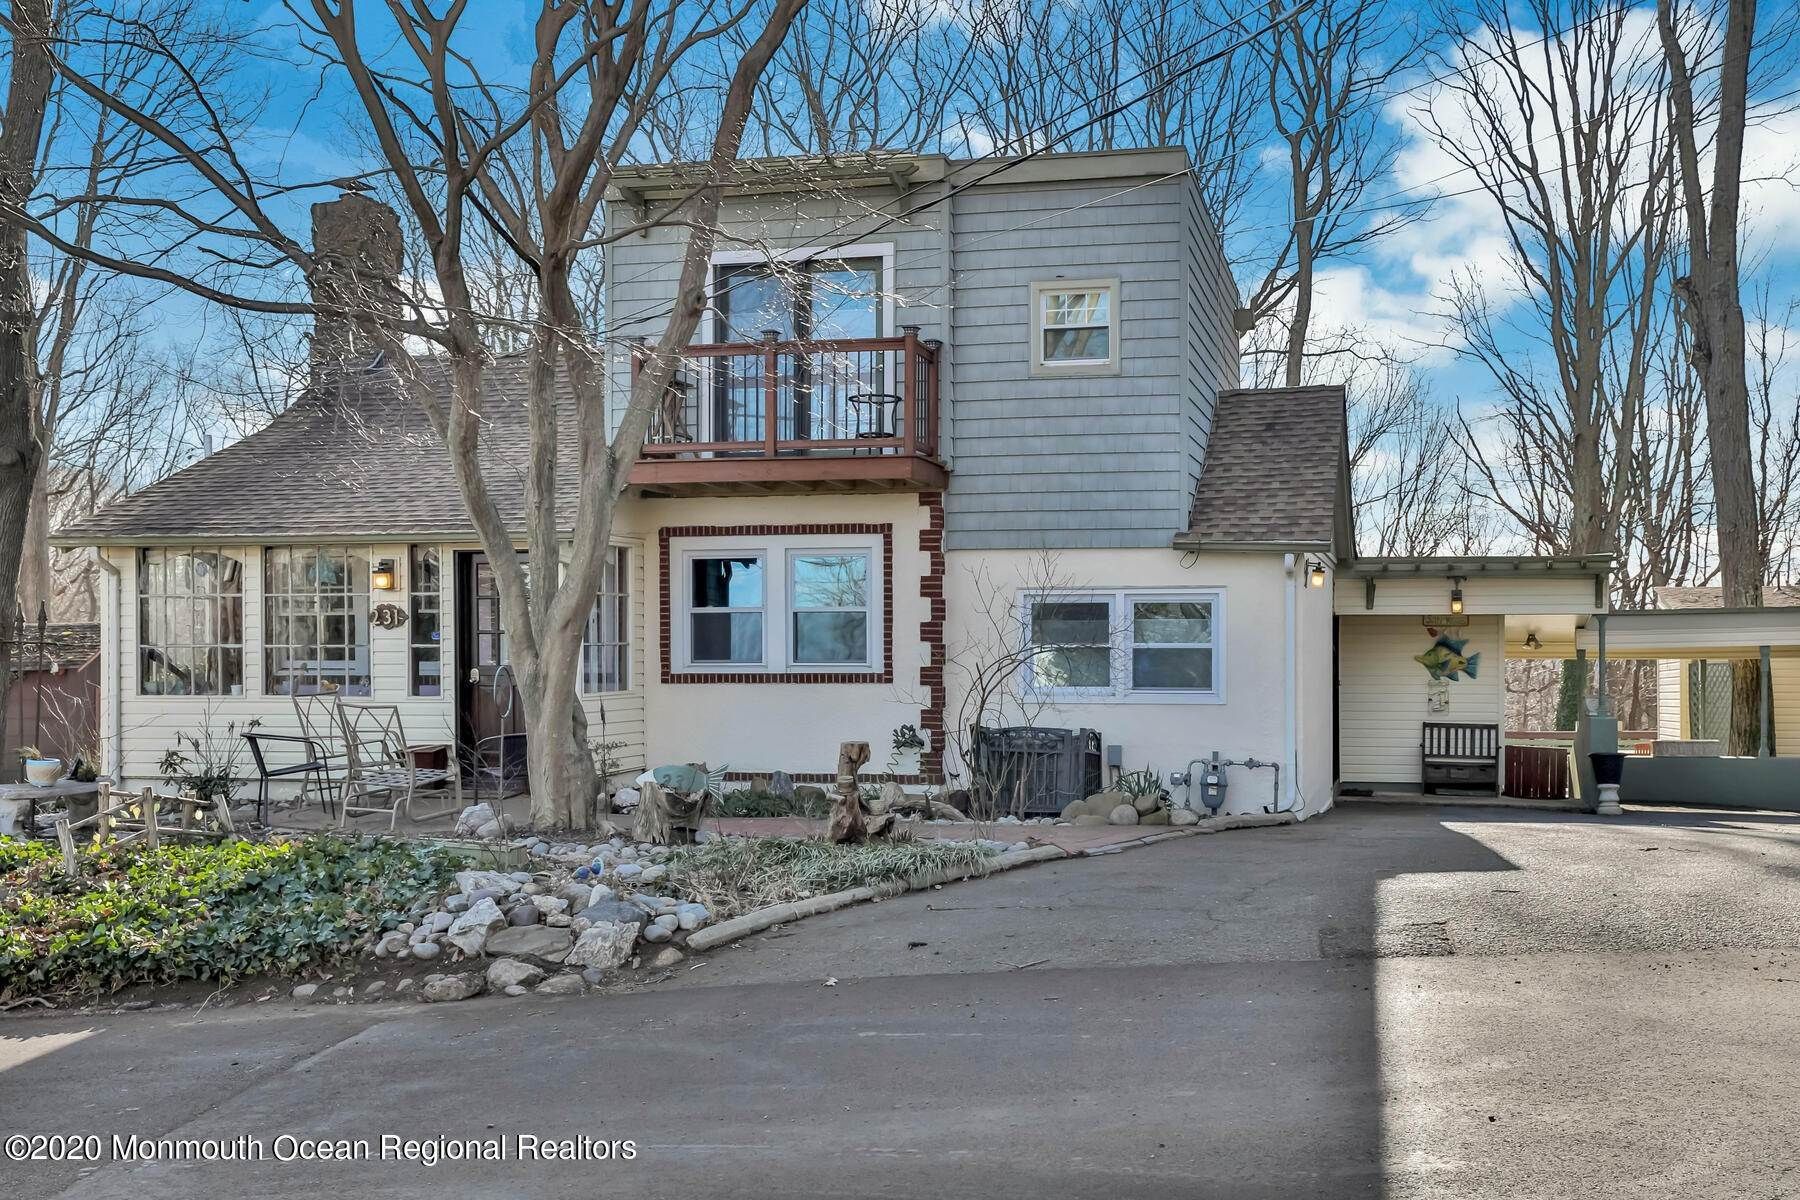 Single Family Home for Sale at 231 Highland Avenue Atlantic Highlands, New Jersey, 07716 United States